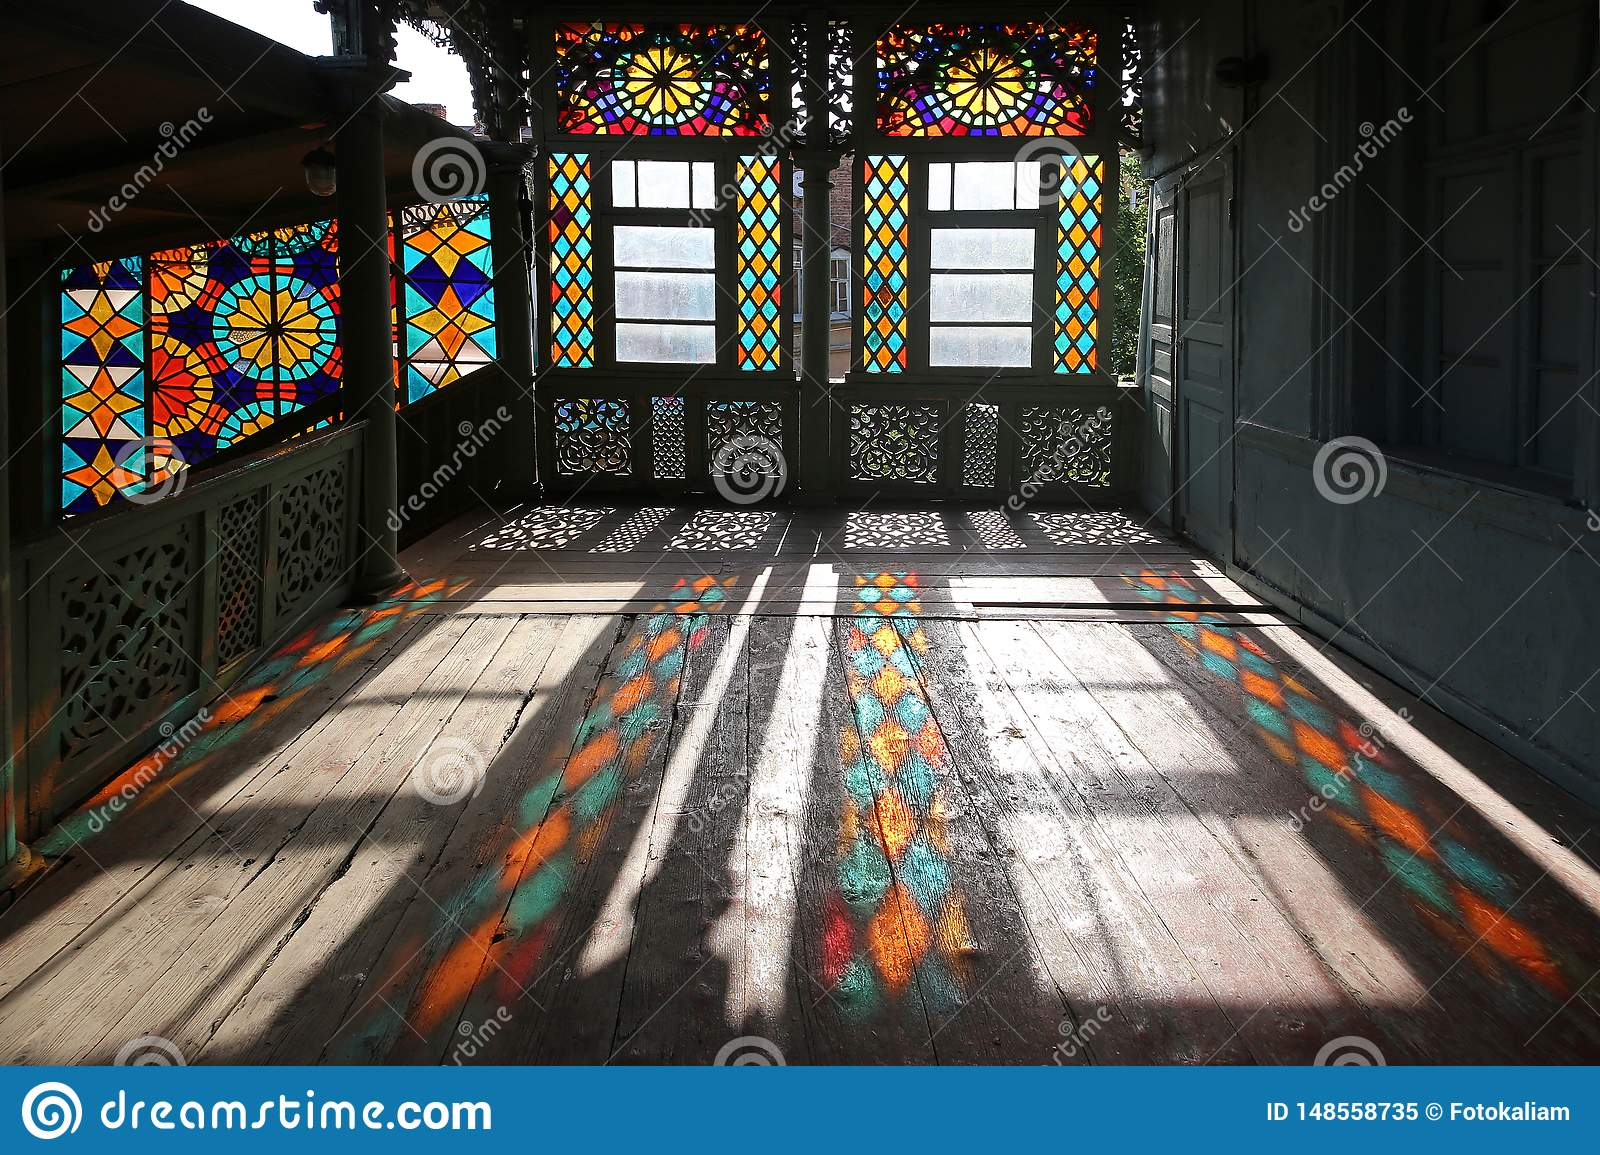 Wooden carved balcony in traditional Georgian style with stained-glass windows